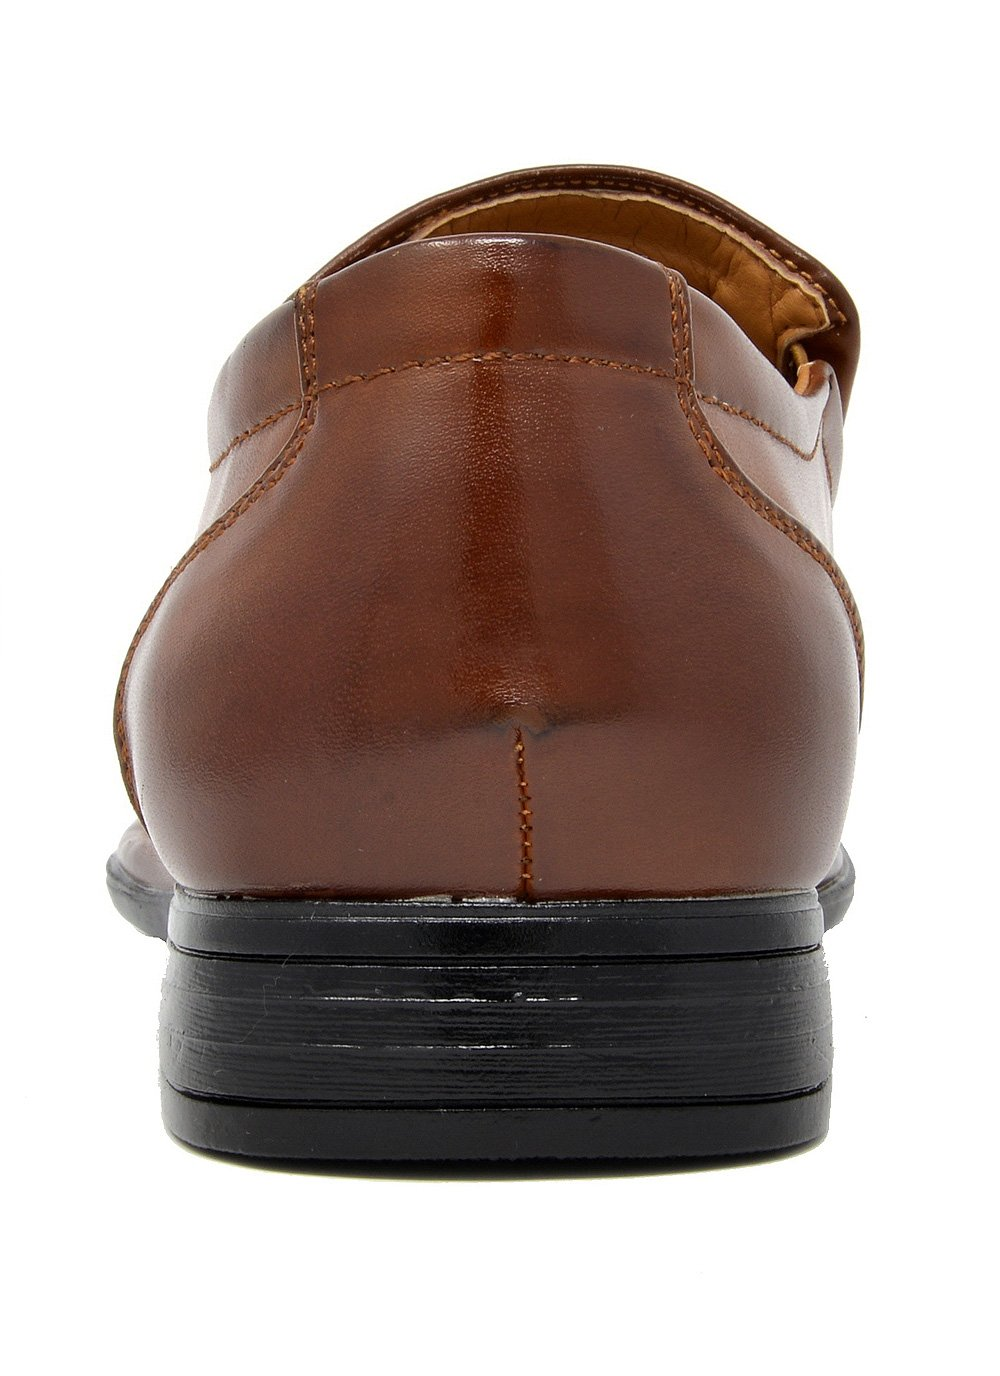 Bruno Marc Men's Giorgio-1 Brown Leather Lined Dress Loafers Shoes - 11 M US by BRUNO MARC NEW YORK (Image #6)